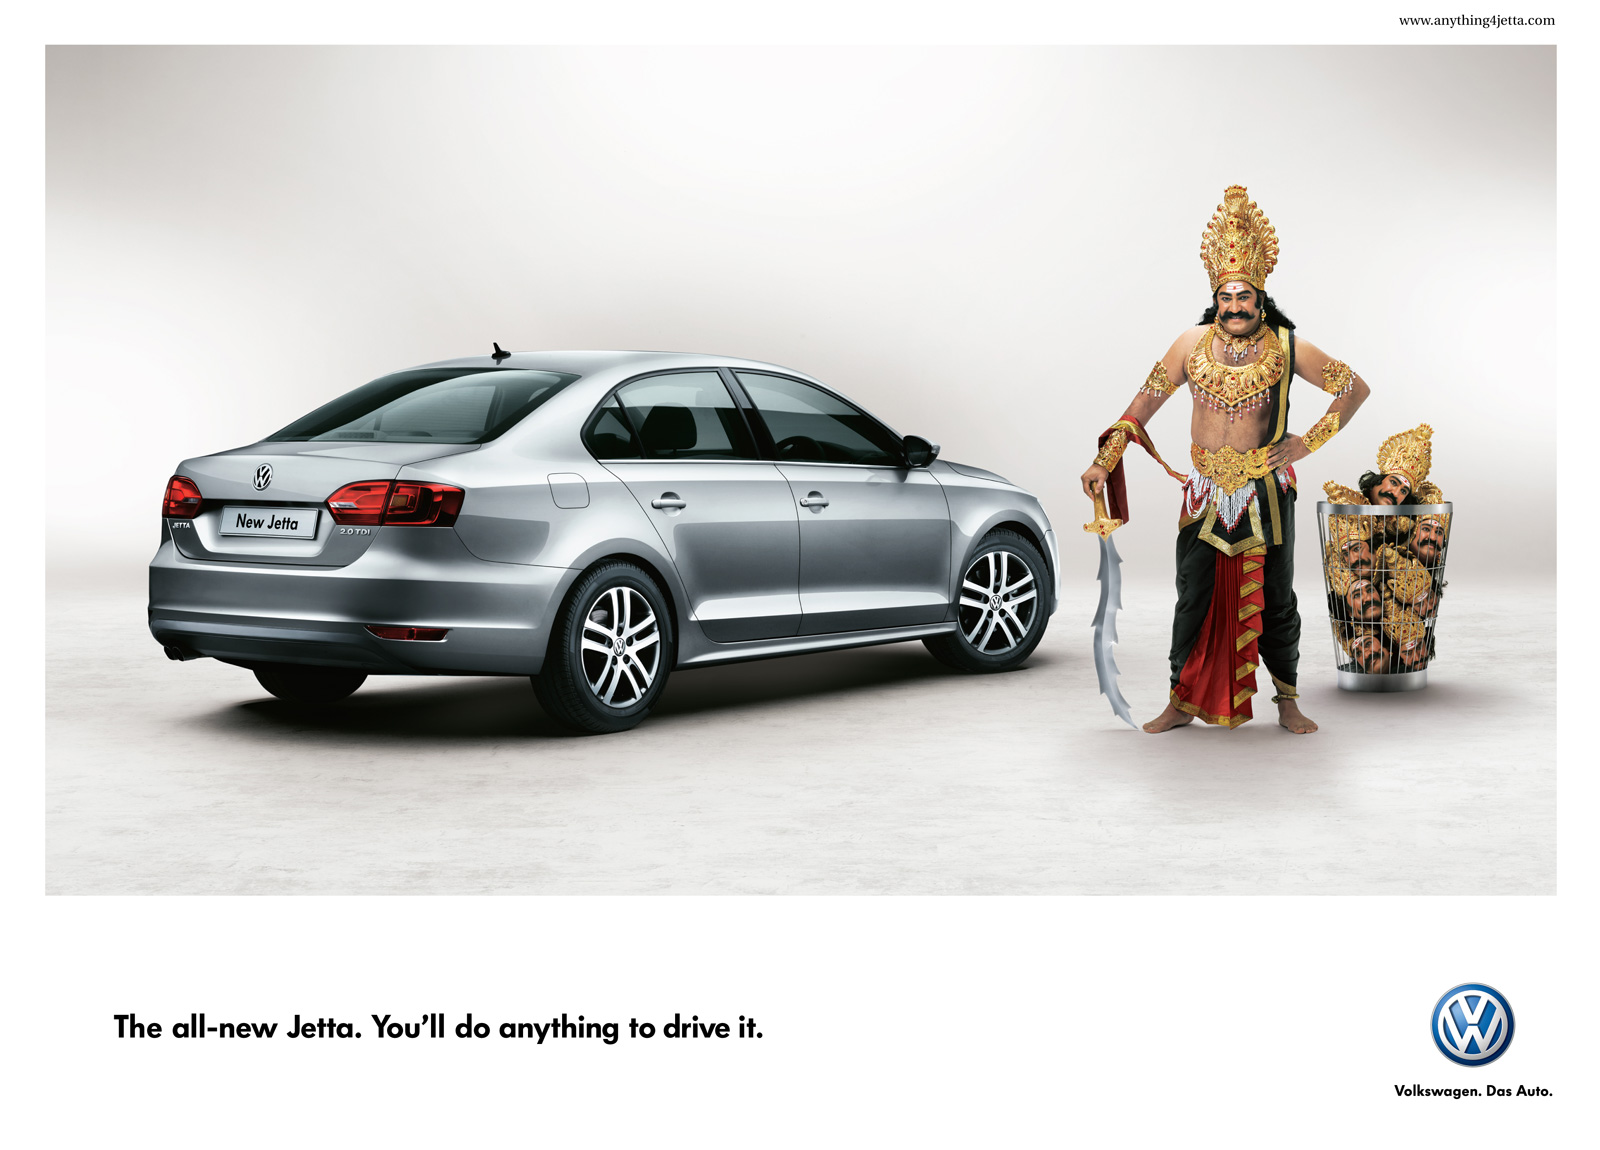 cool ads nice art  Volkswagen Jetta  Youll do anything to drive it